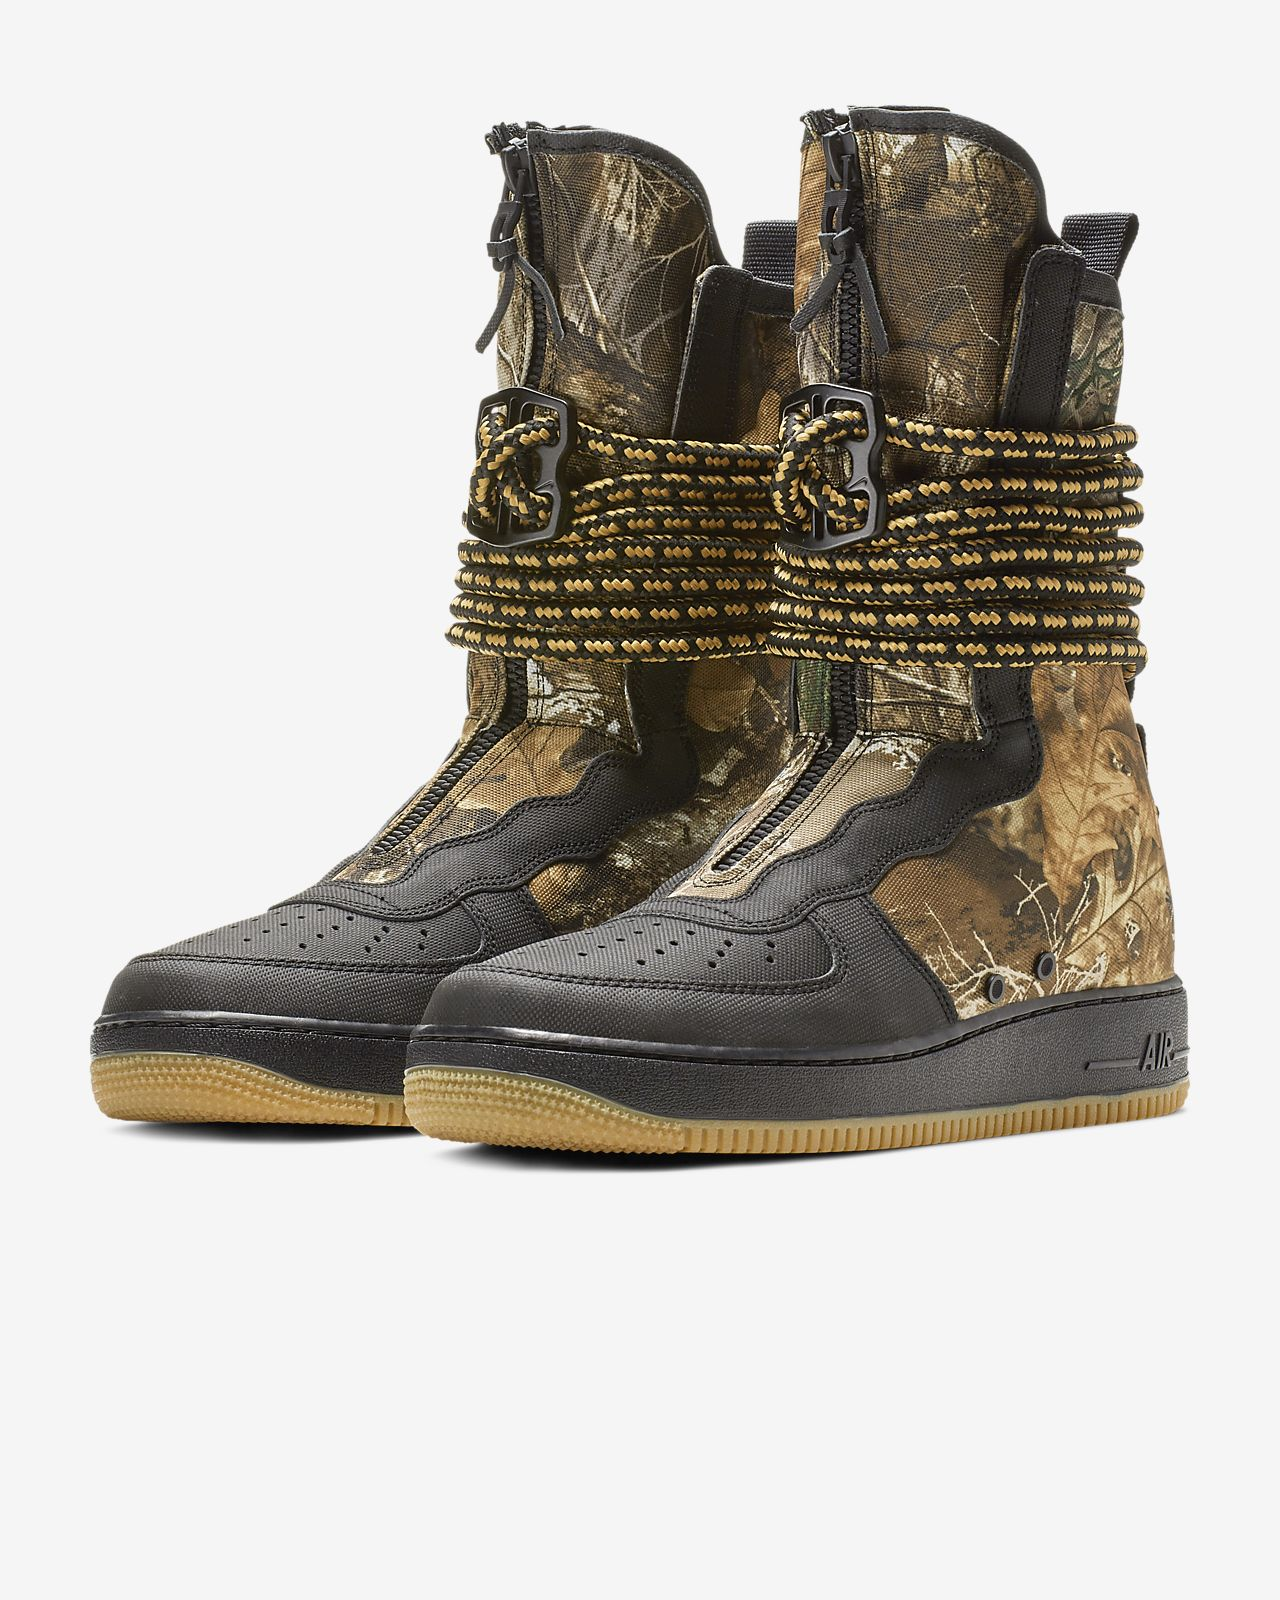 reputable site 15485 d4641 Nike SF Air Force 1 Realtree® High Men's Boot. Nike.com